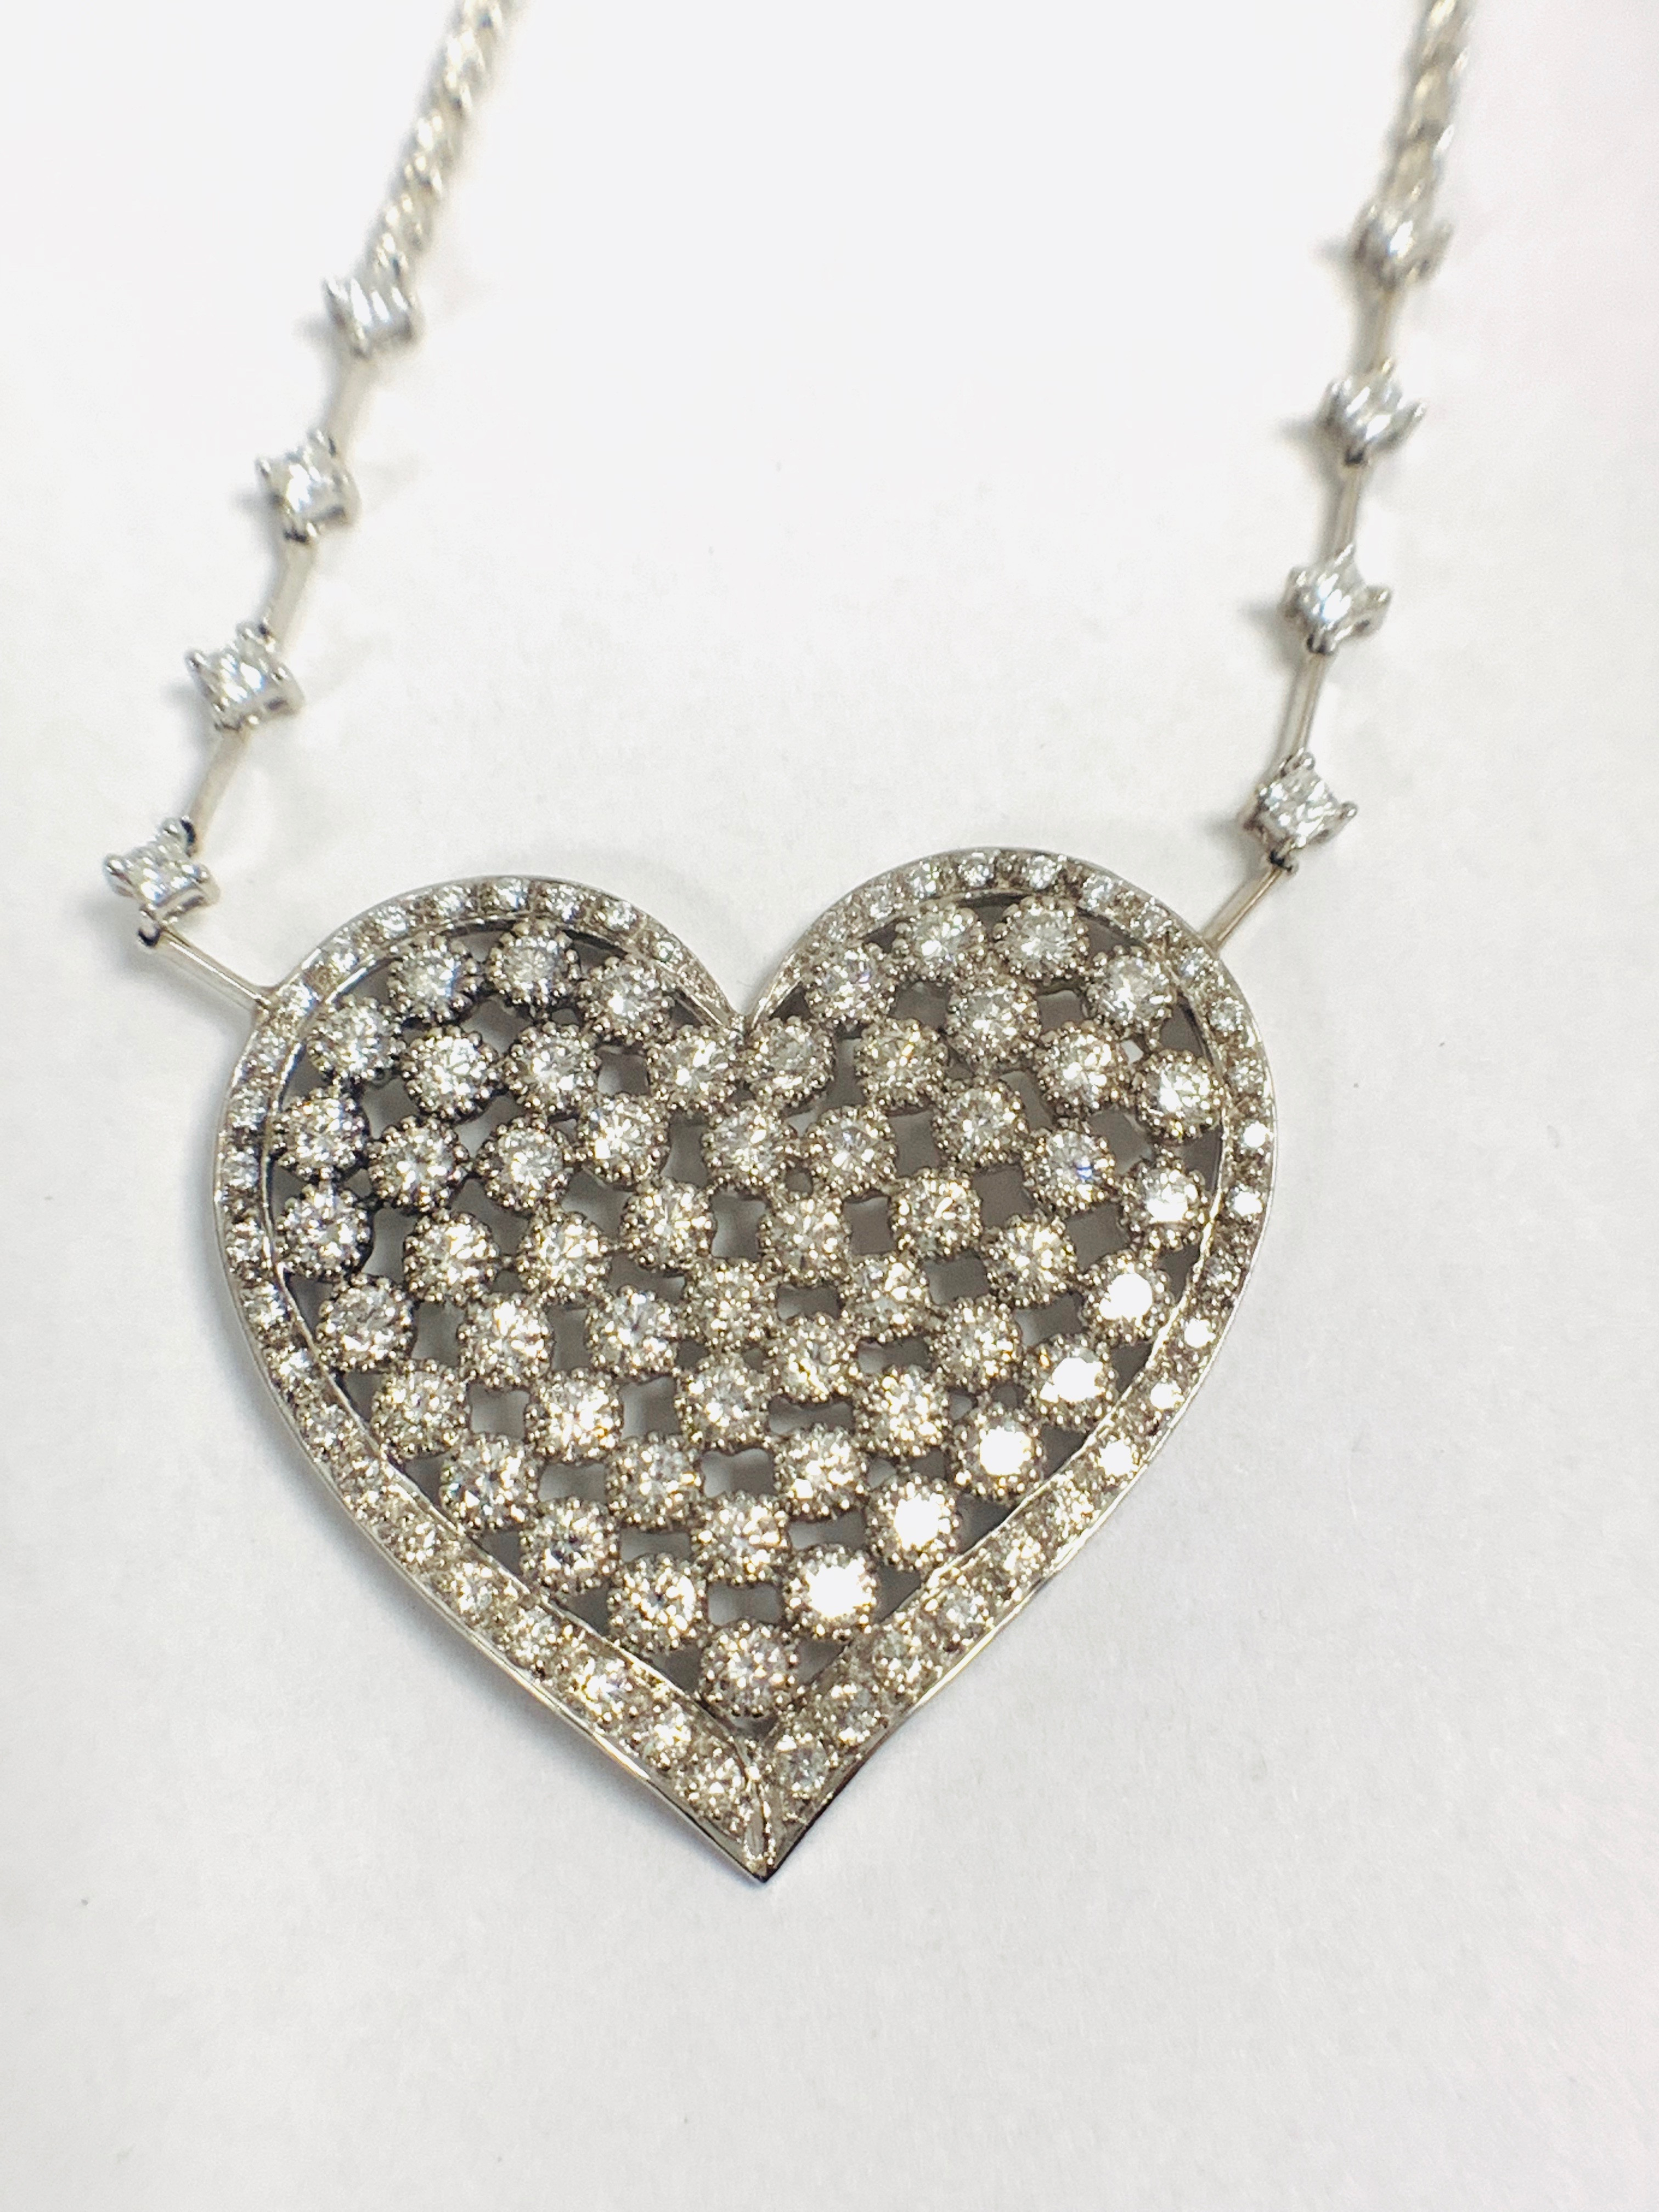 18ct White Gold Diamond heart necklace - Image 8 of 12